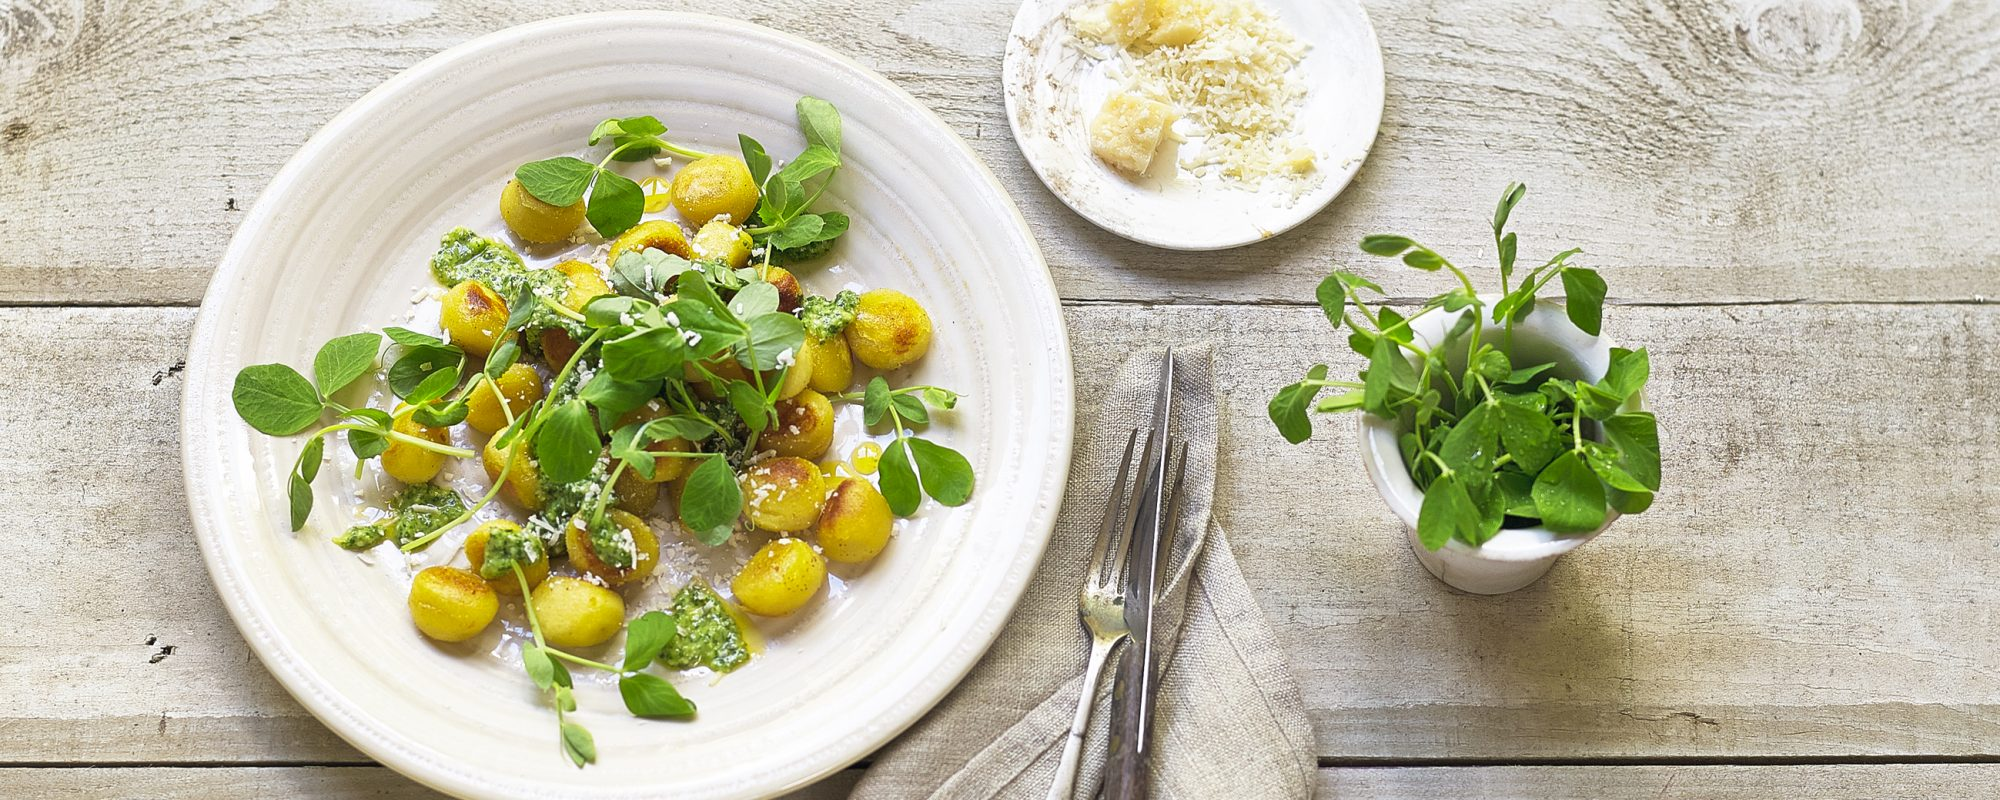 Gnocchi with Cressto & Pea Shoots